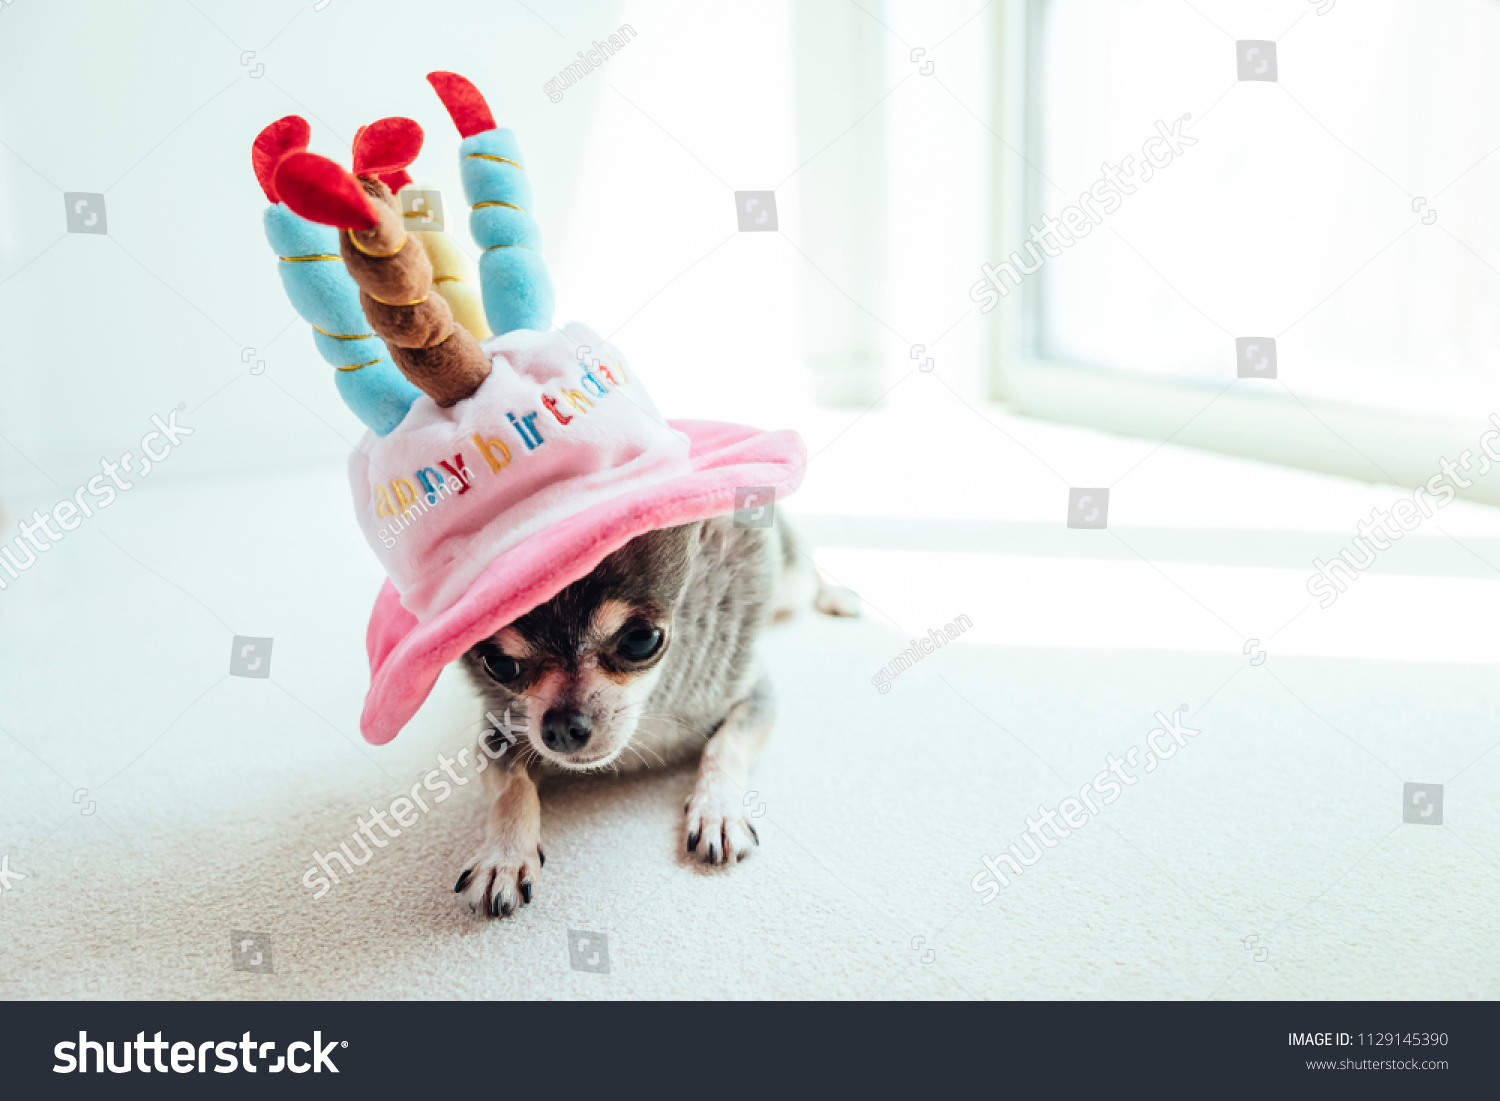 A Dog Lying On Hat In The Shape Of Birthday Cake Is Down